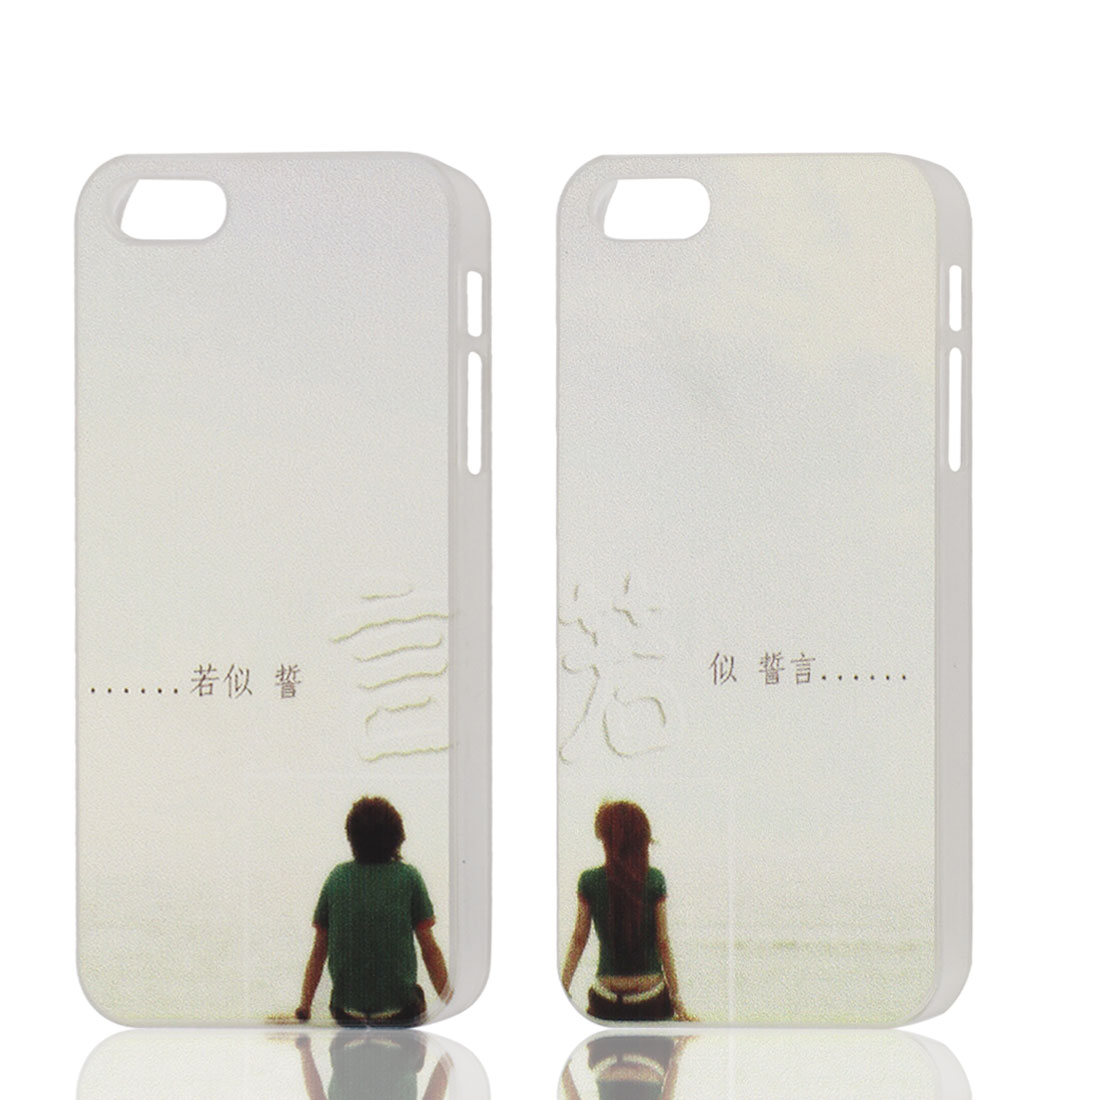 Pair Couple Boy Girl Hard Back Case Cover Protector White for Apple iPhone 5 5th